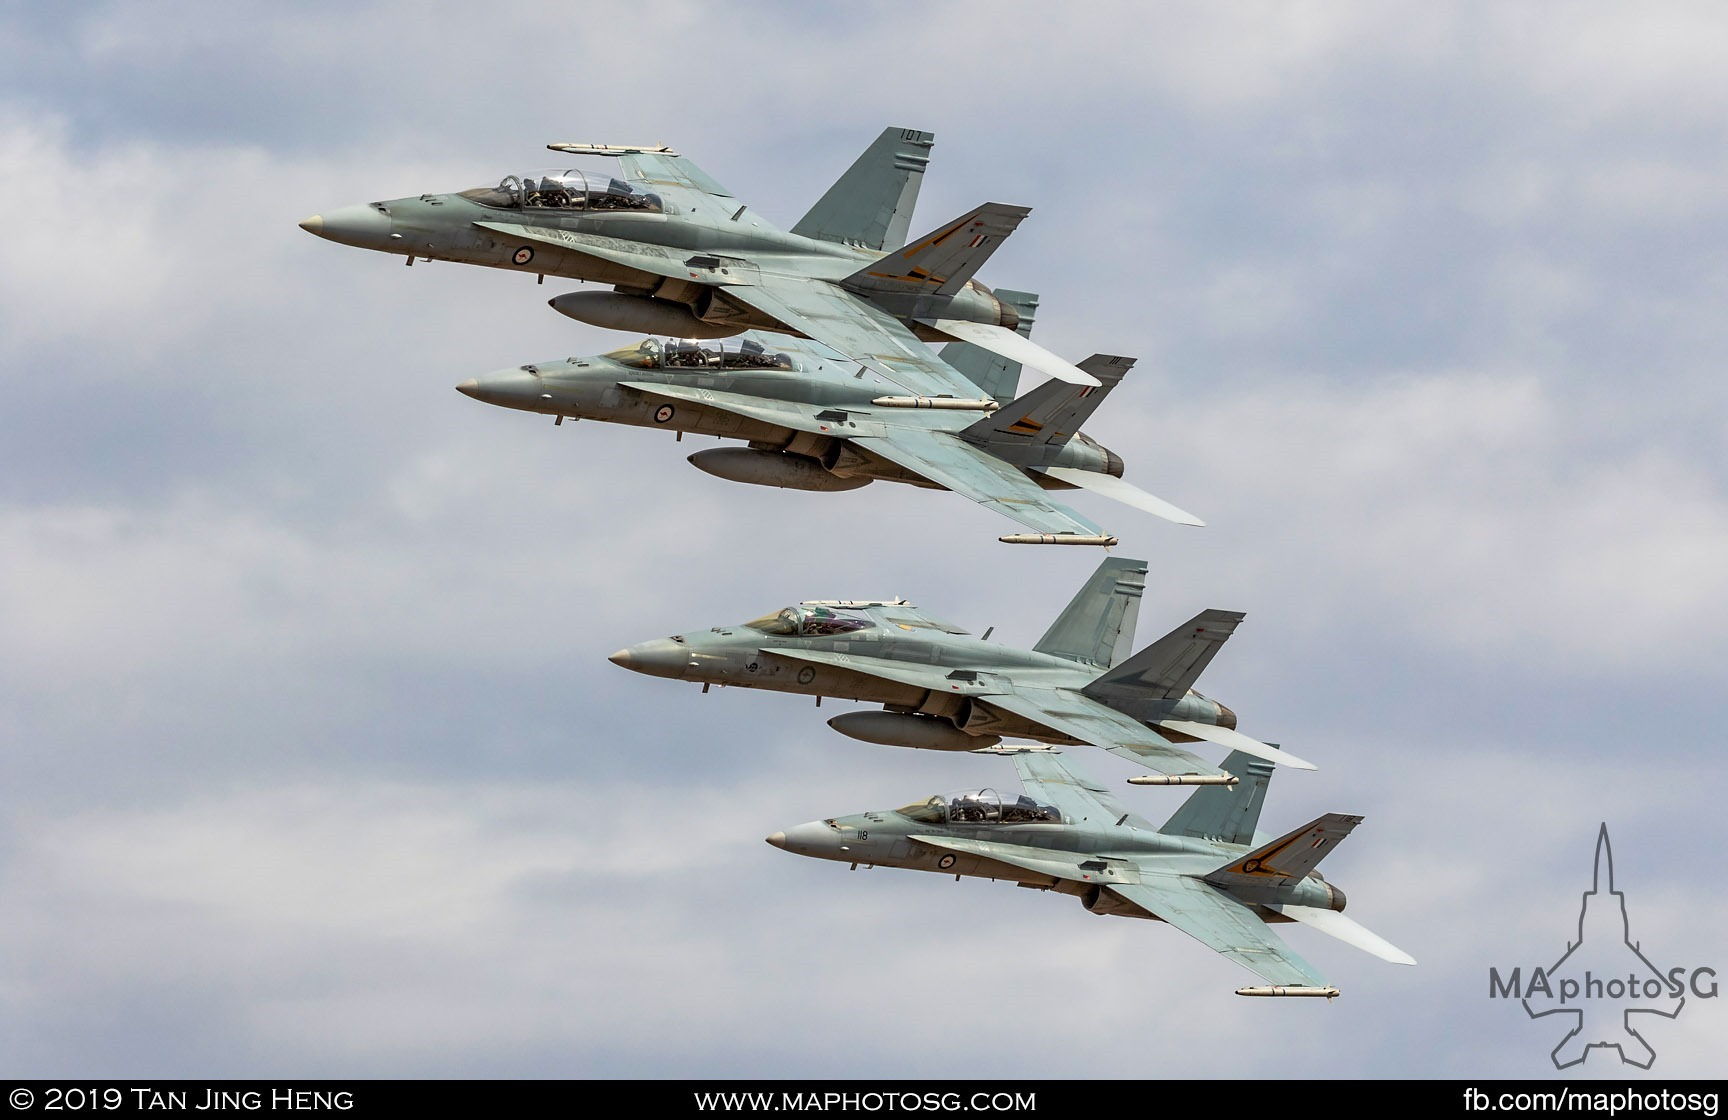 Formation of 4 RAAF F/A-18 Hornets